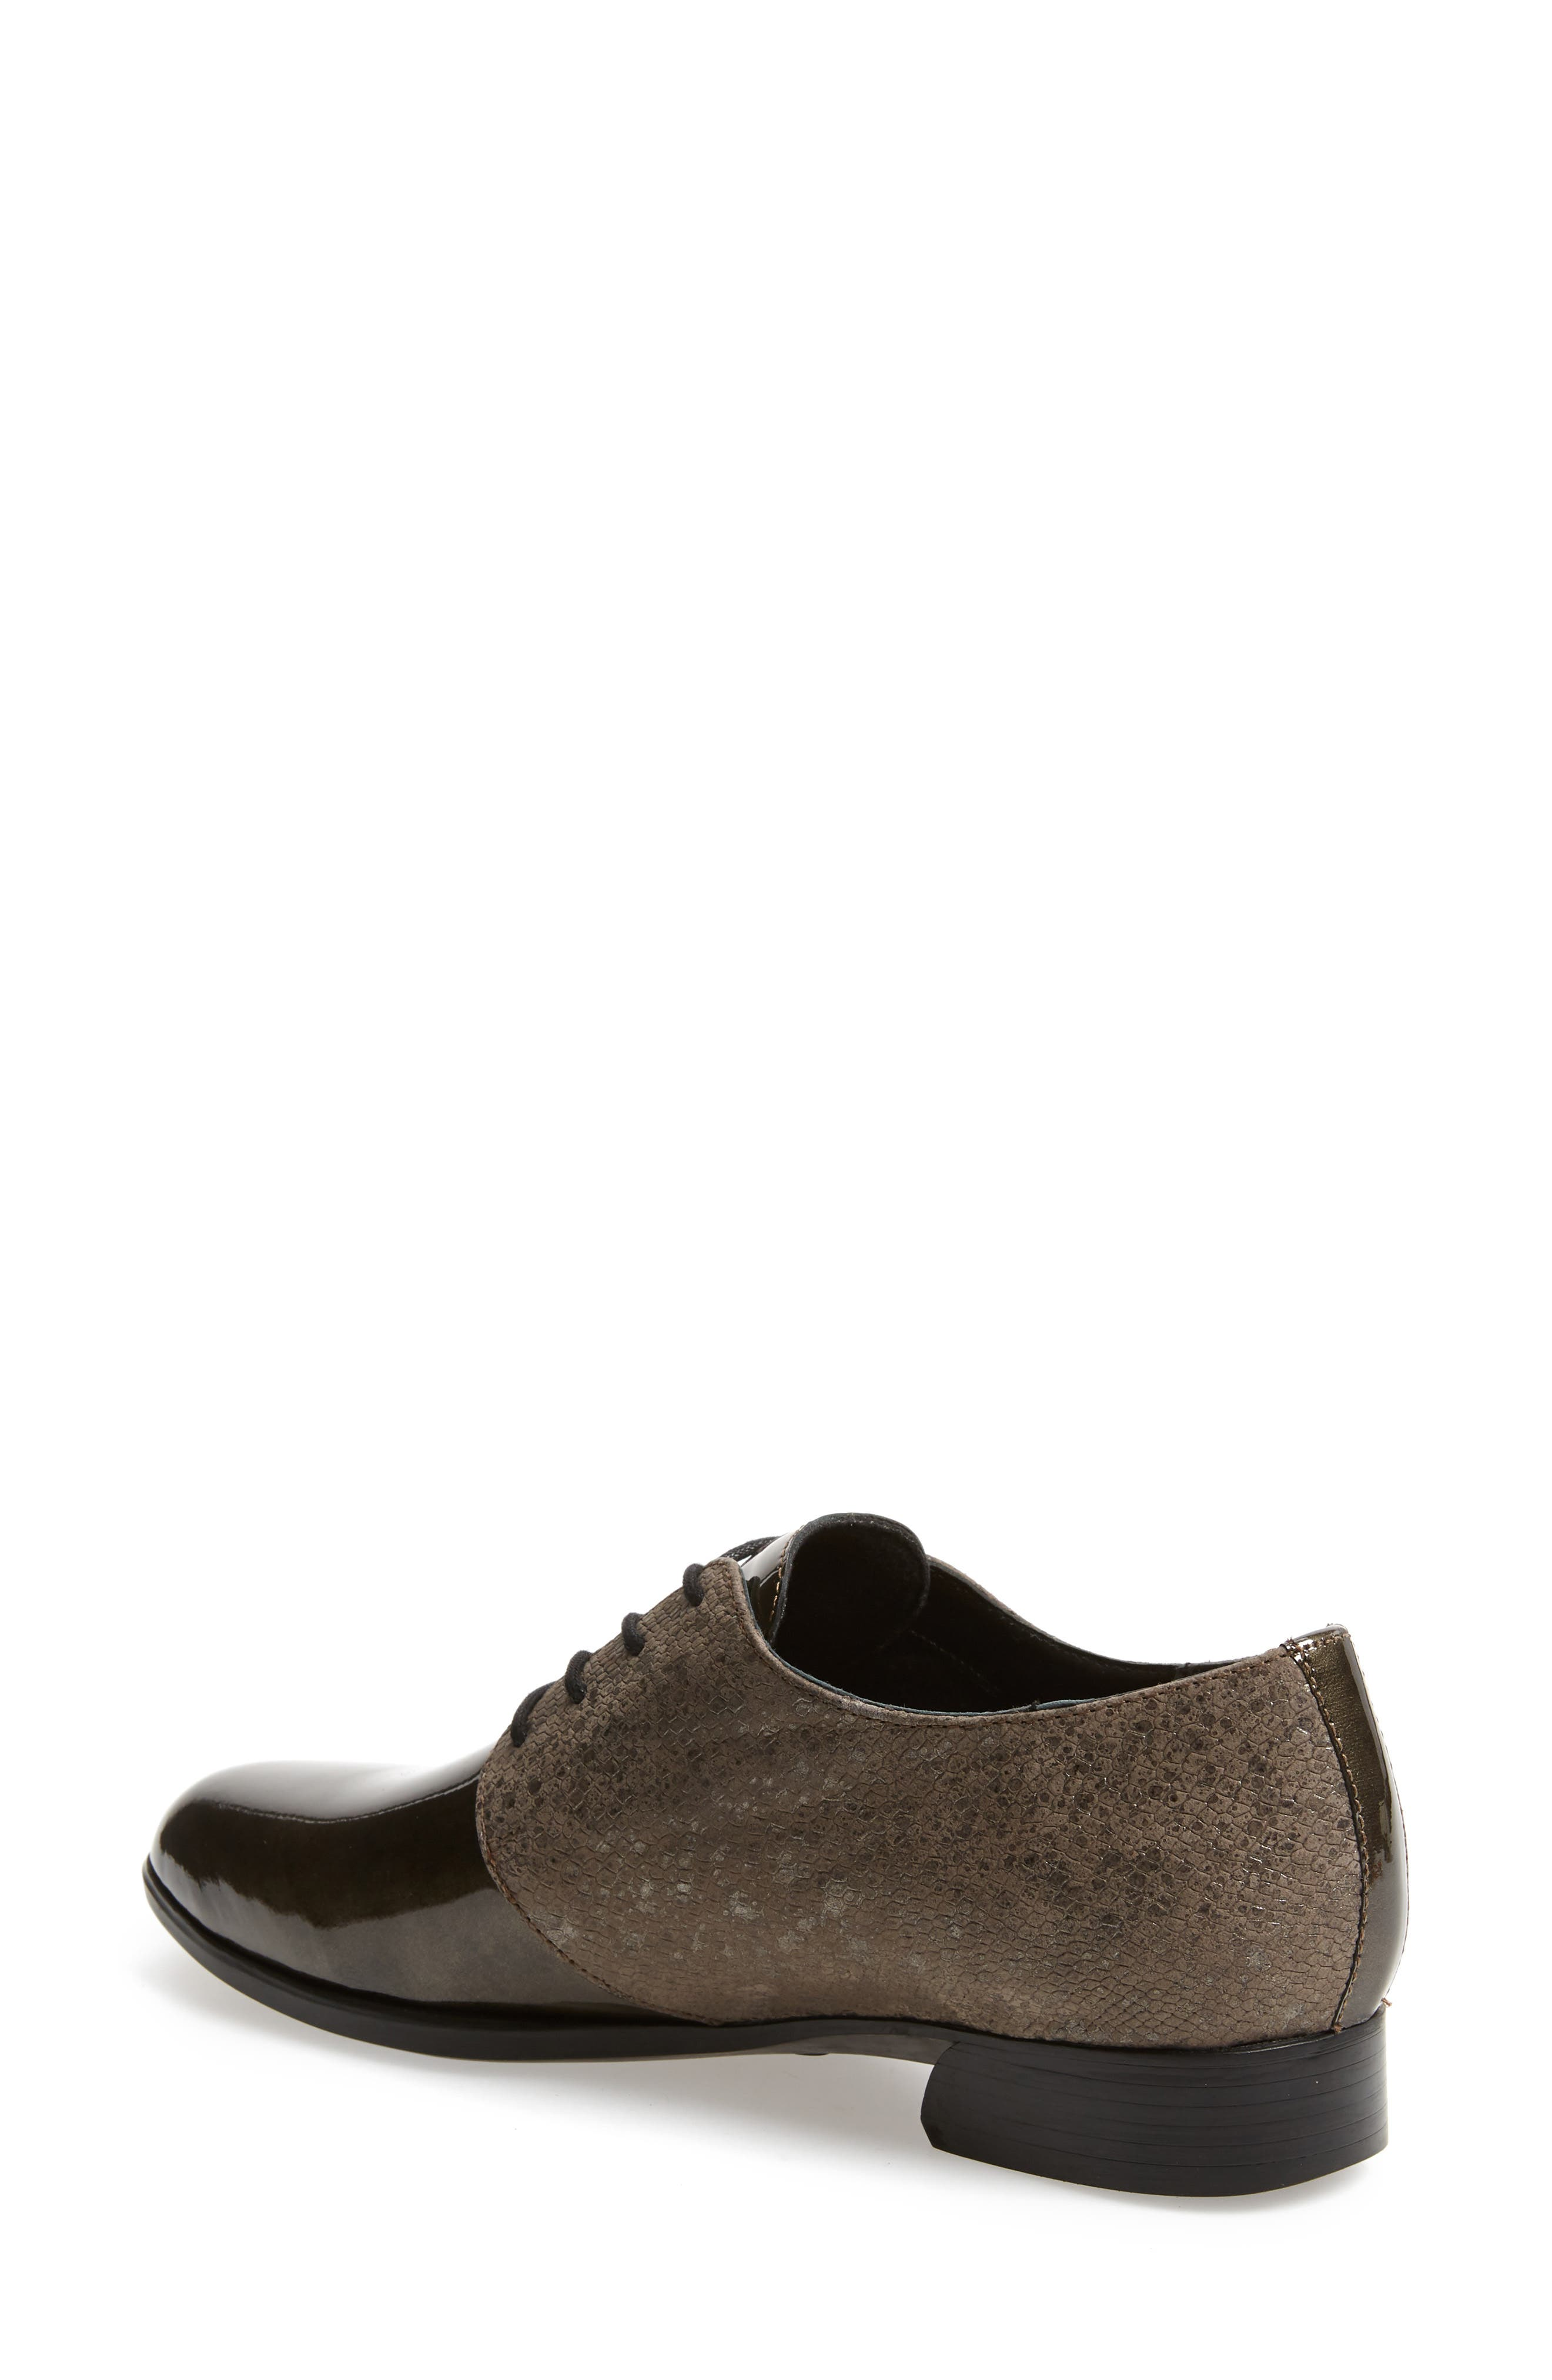 MUNRO, Markella Derby, Alternate thumbnail 2, color, GREY PATENT LEATHER